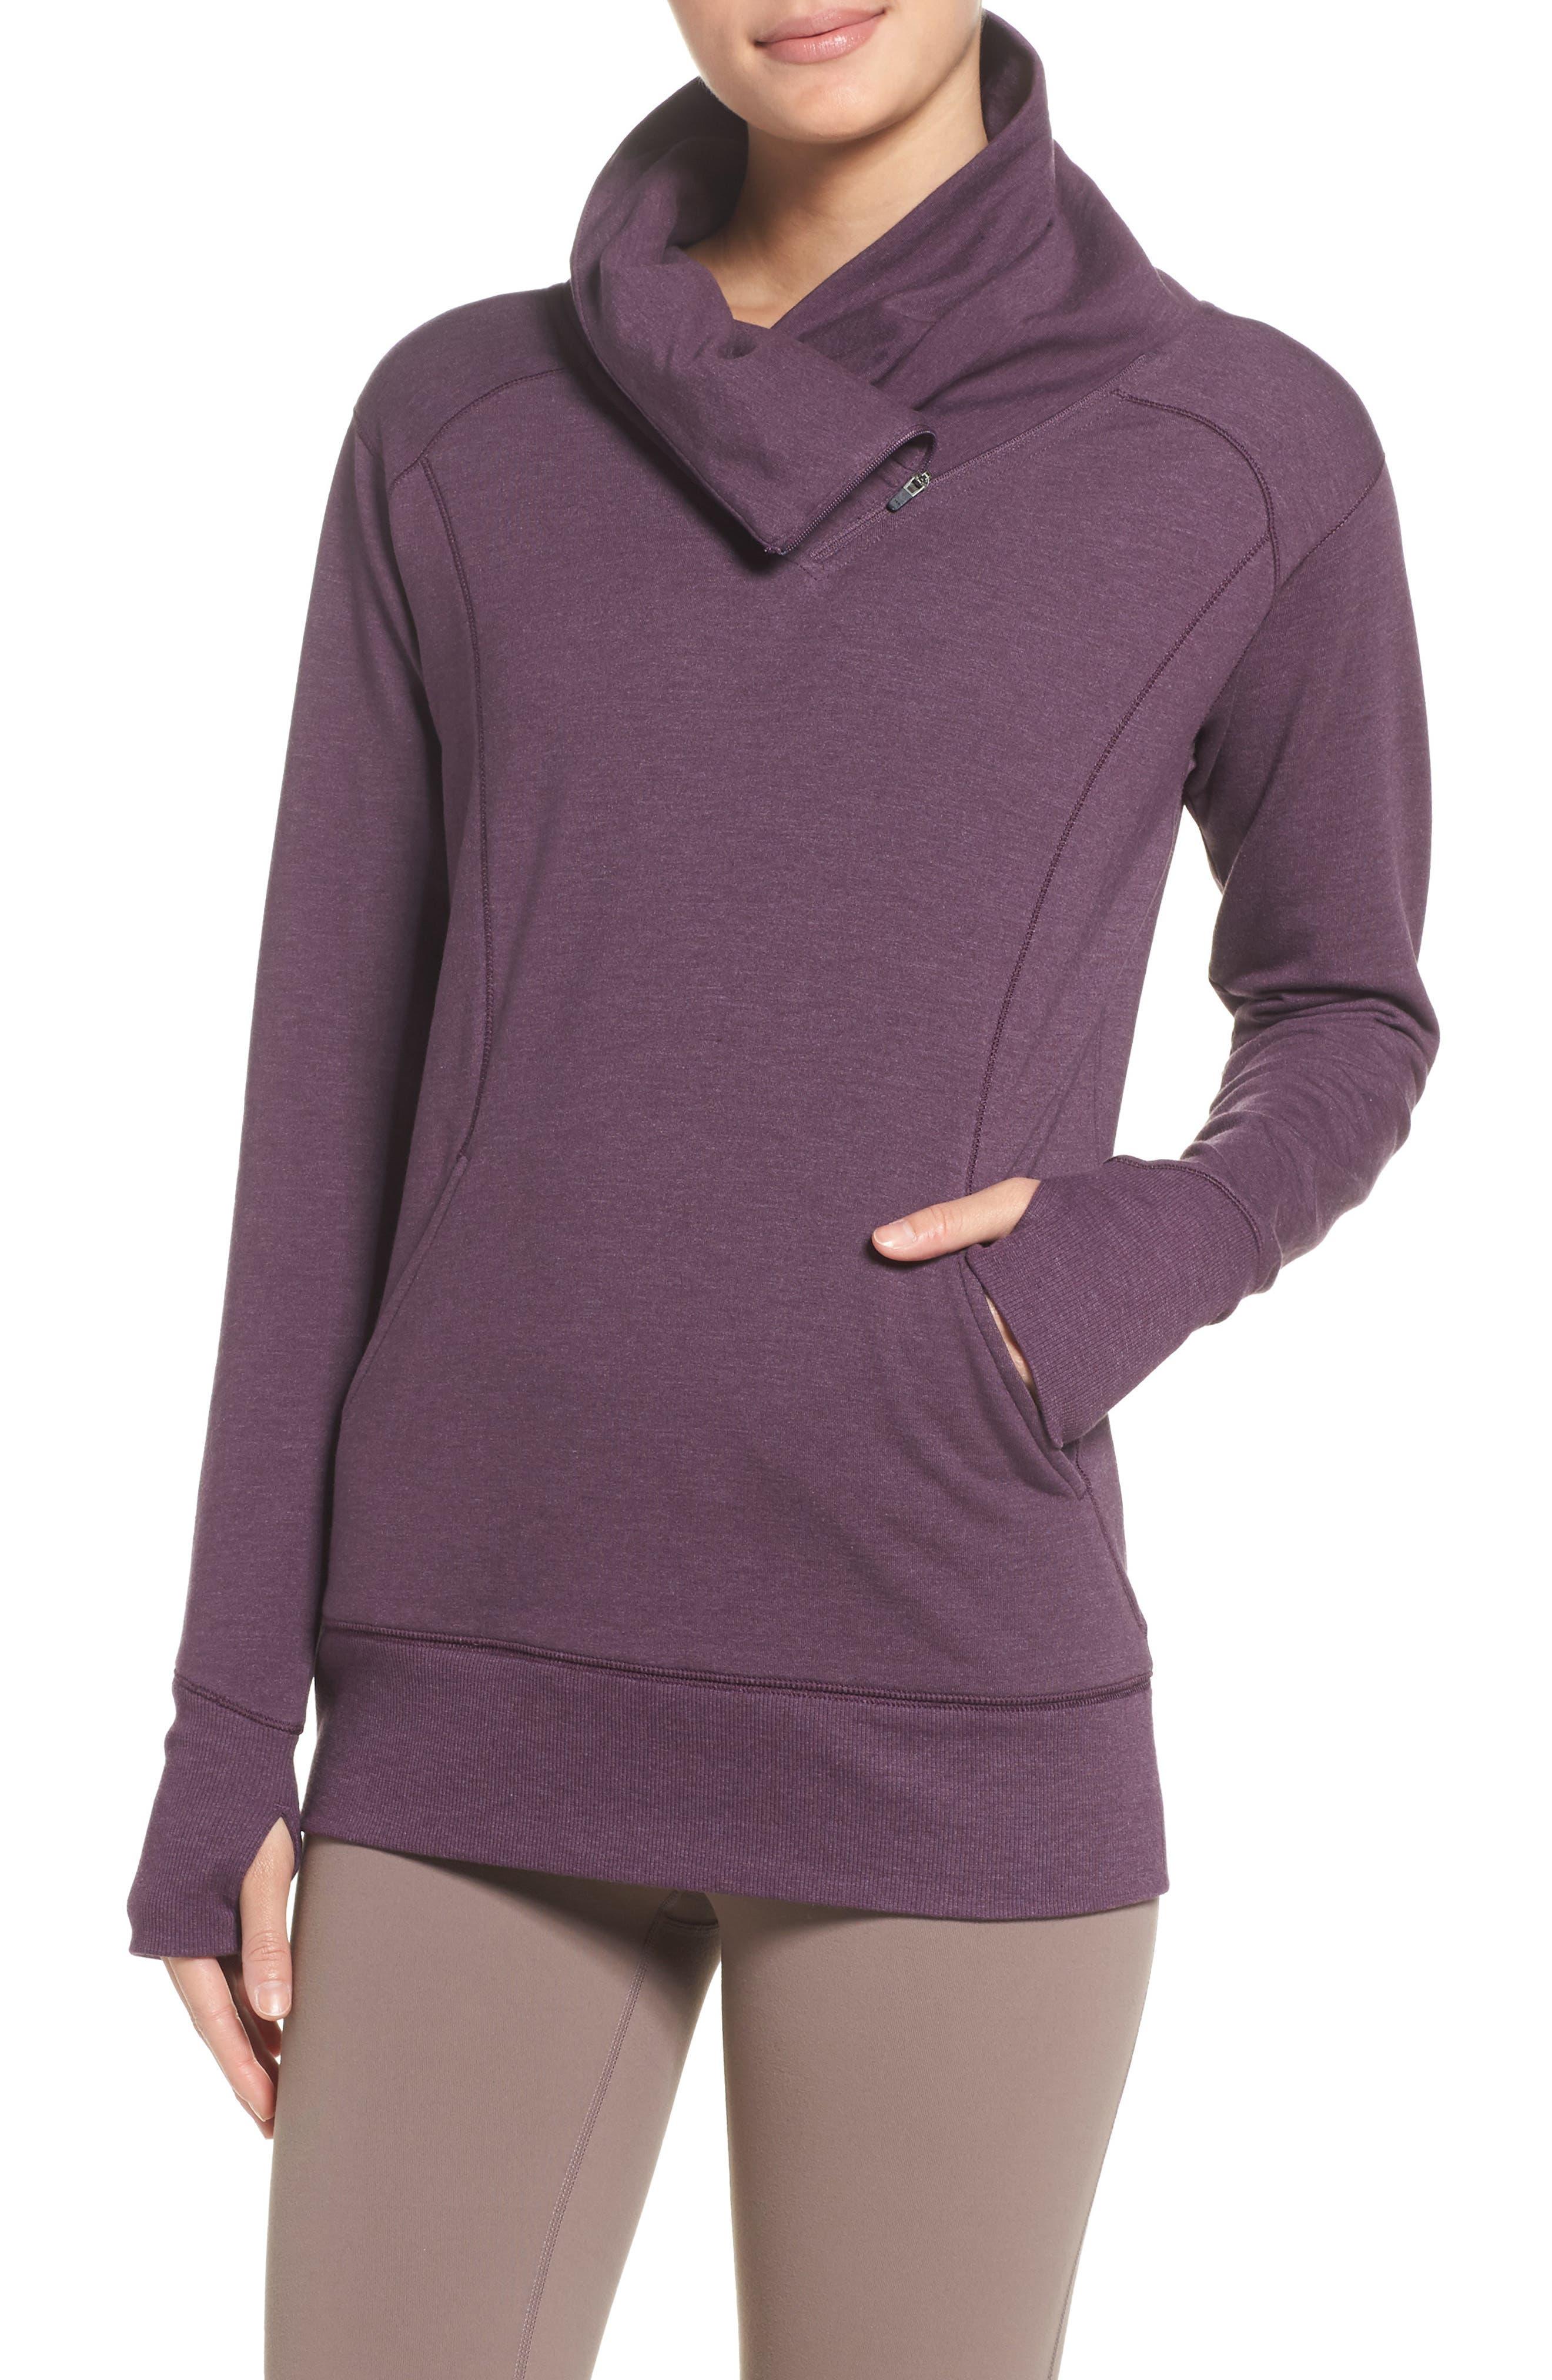 Women's Sweatshirts & Hoodies Tops & Tees | Nordstrom